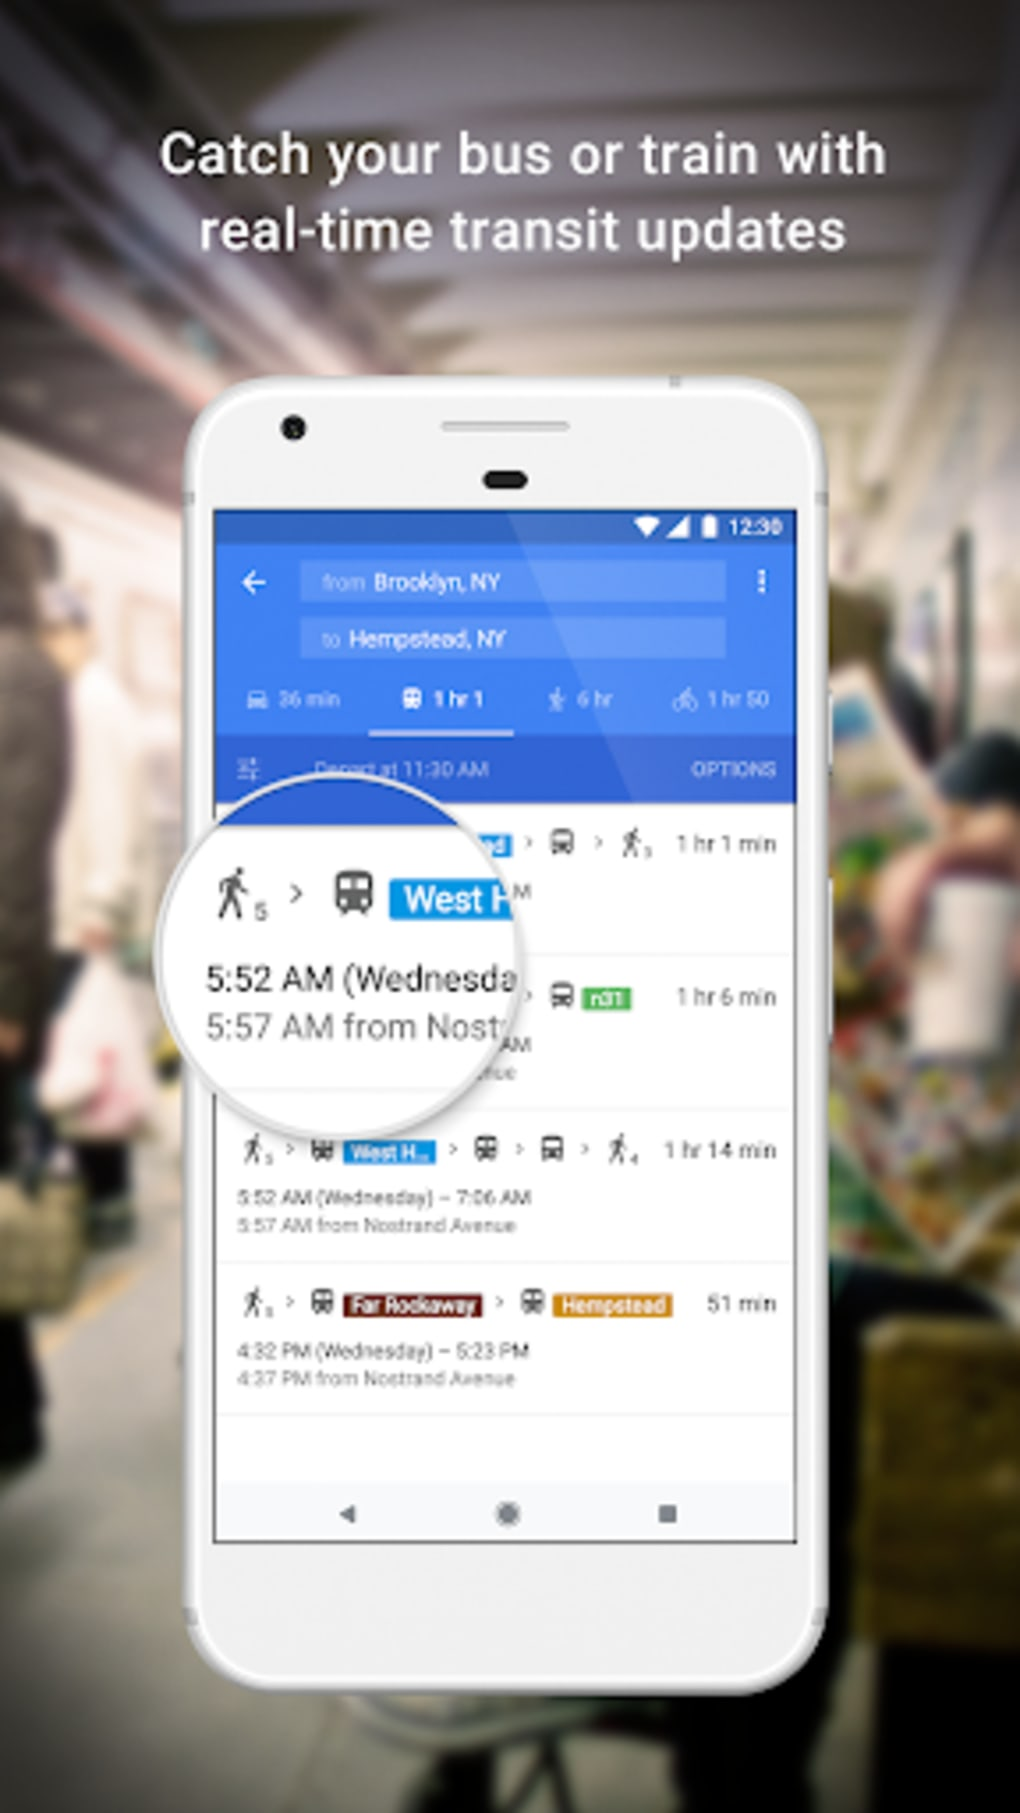 Google Maps APK for Android - Download on google maps print free, 3d street maps free, street map template free, map clip art free, animation download free, google earth 2012, android download free,